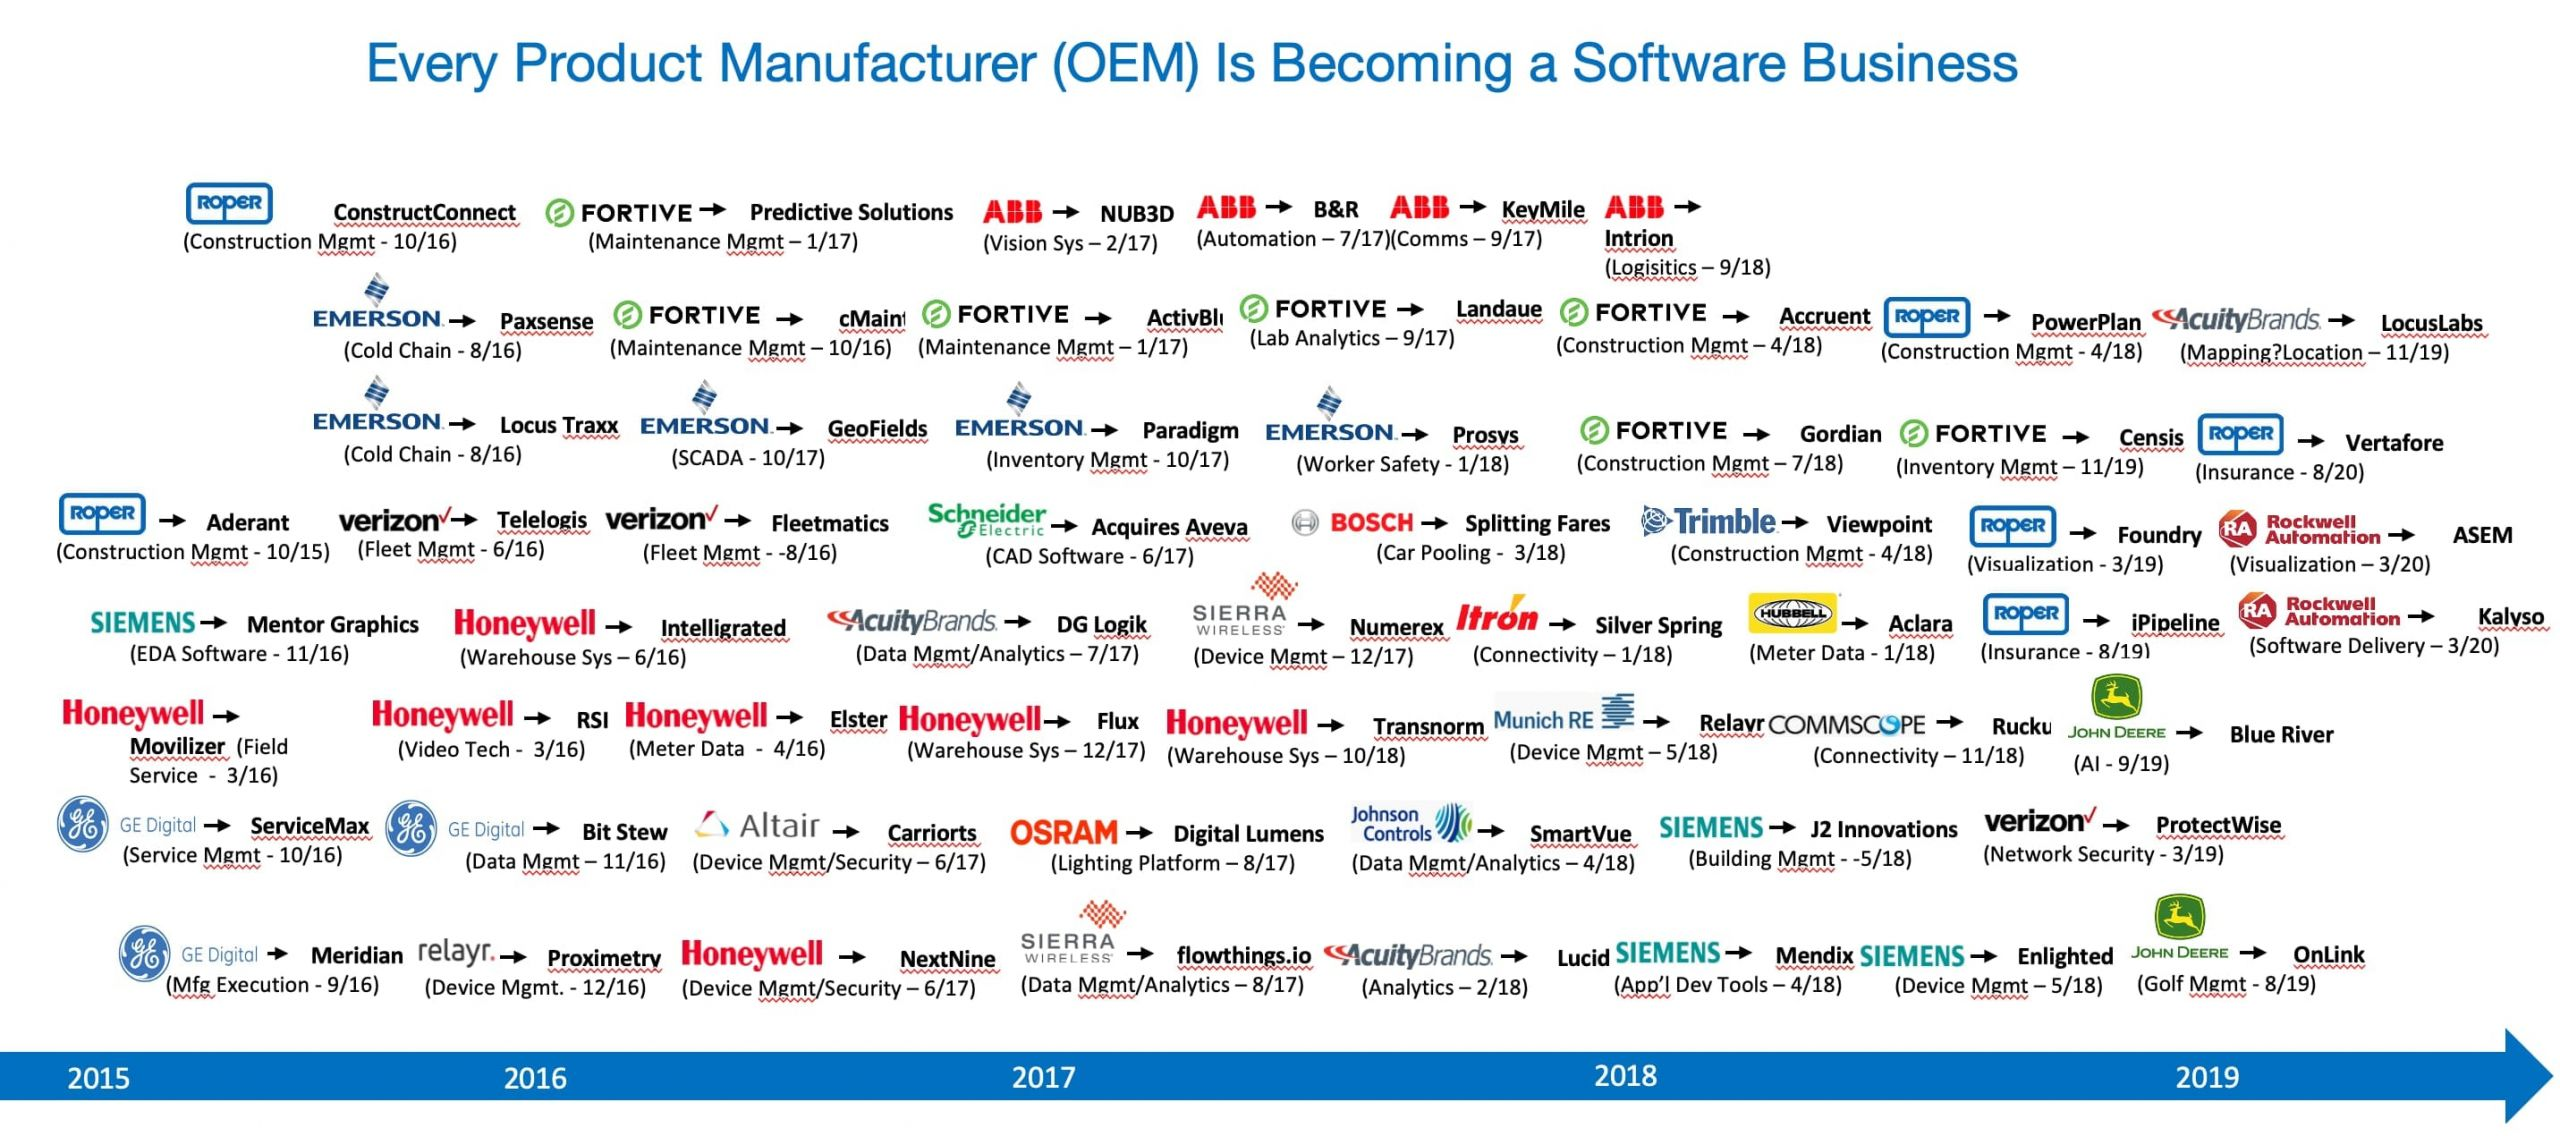 Chart of OEM software acquisitions